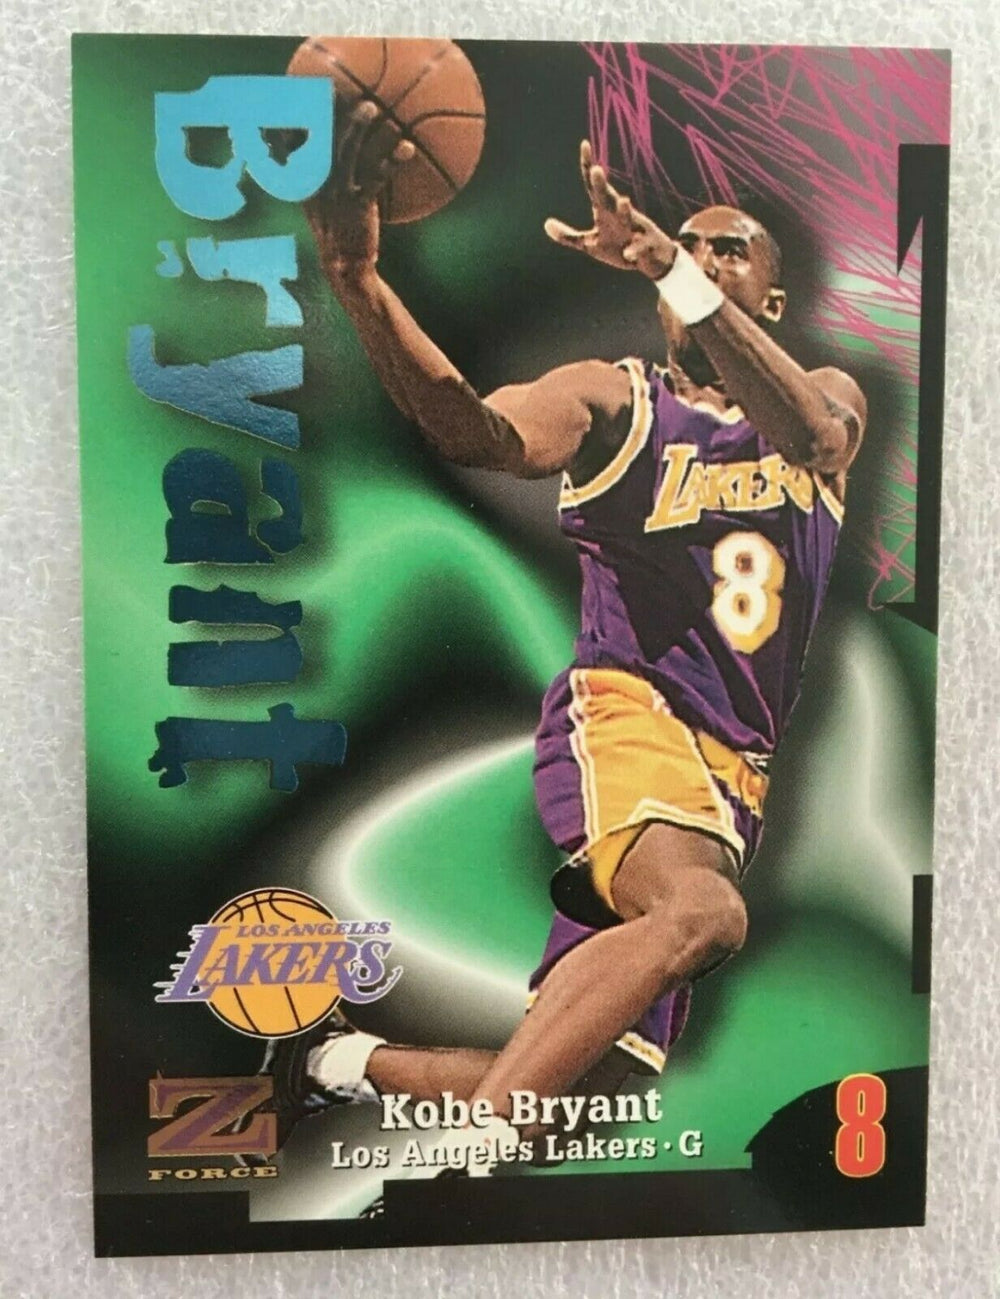 Kobe Bryant 1997 1998 Skybox Z-Force Basketball Series Mint Card #88